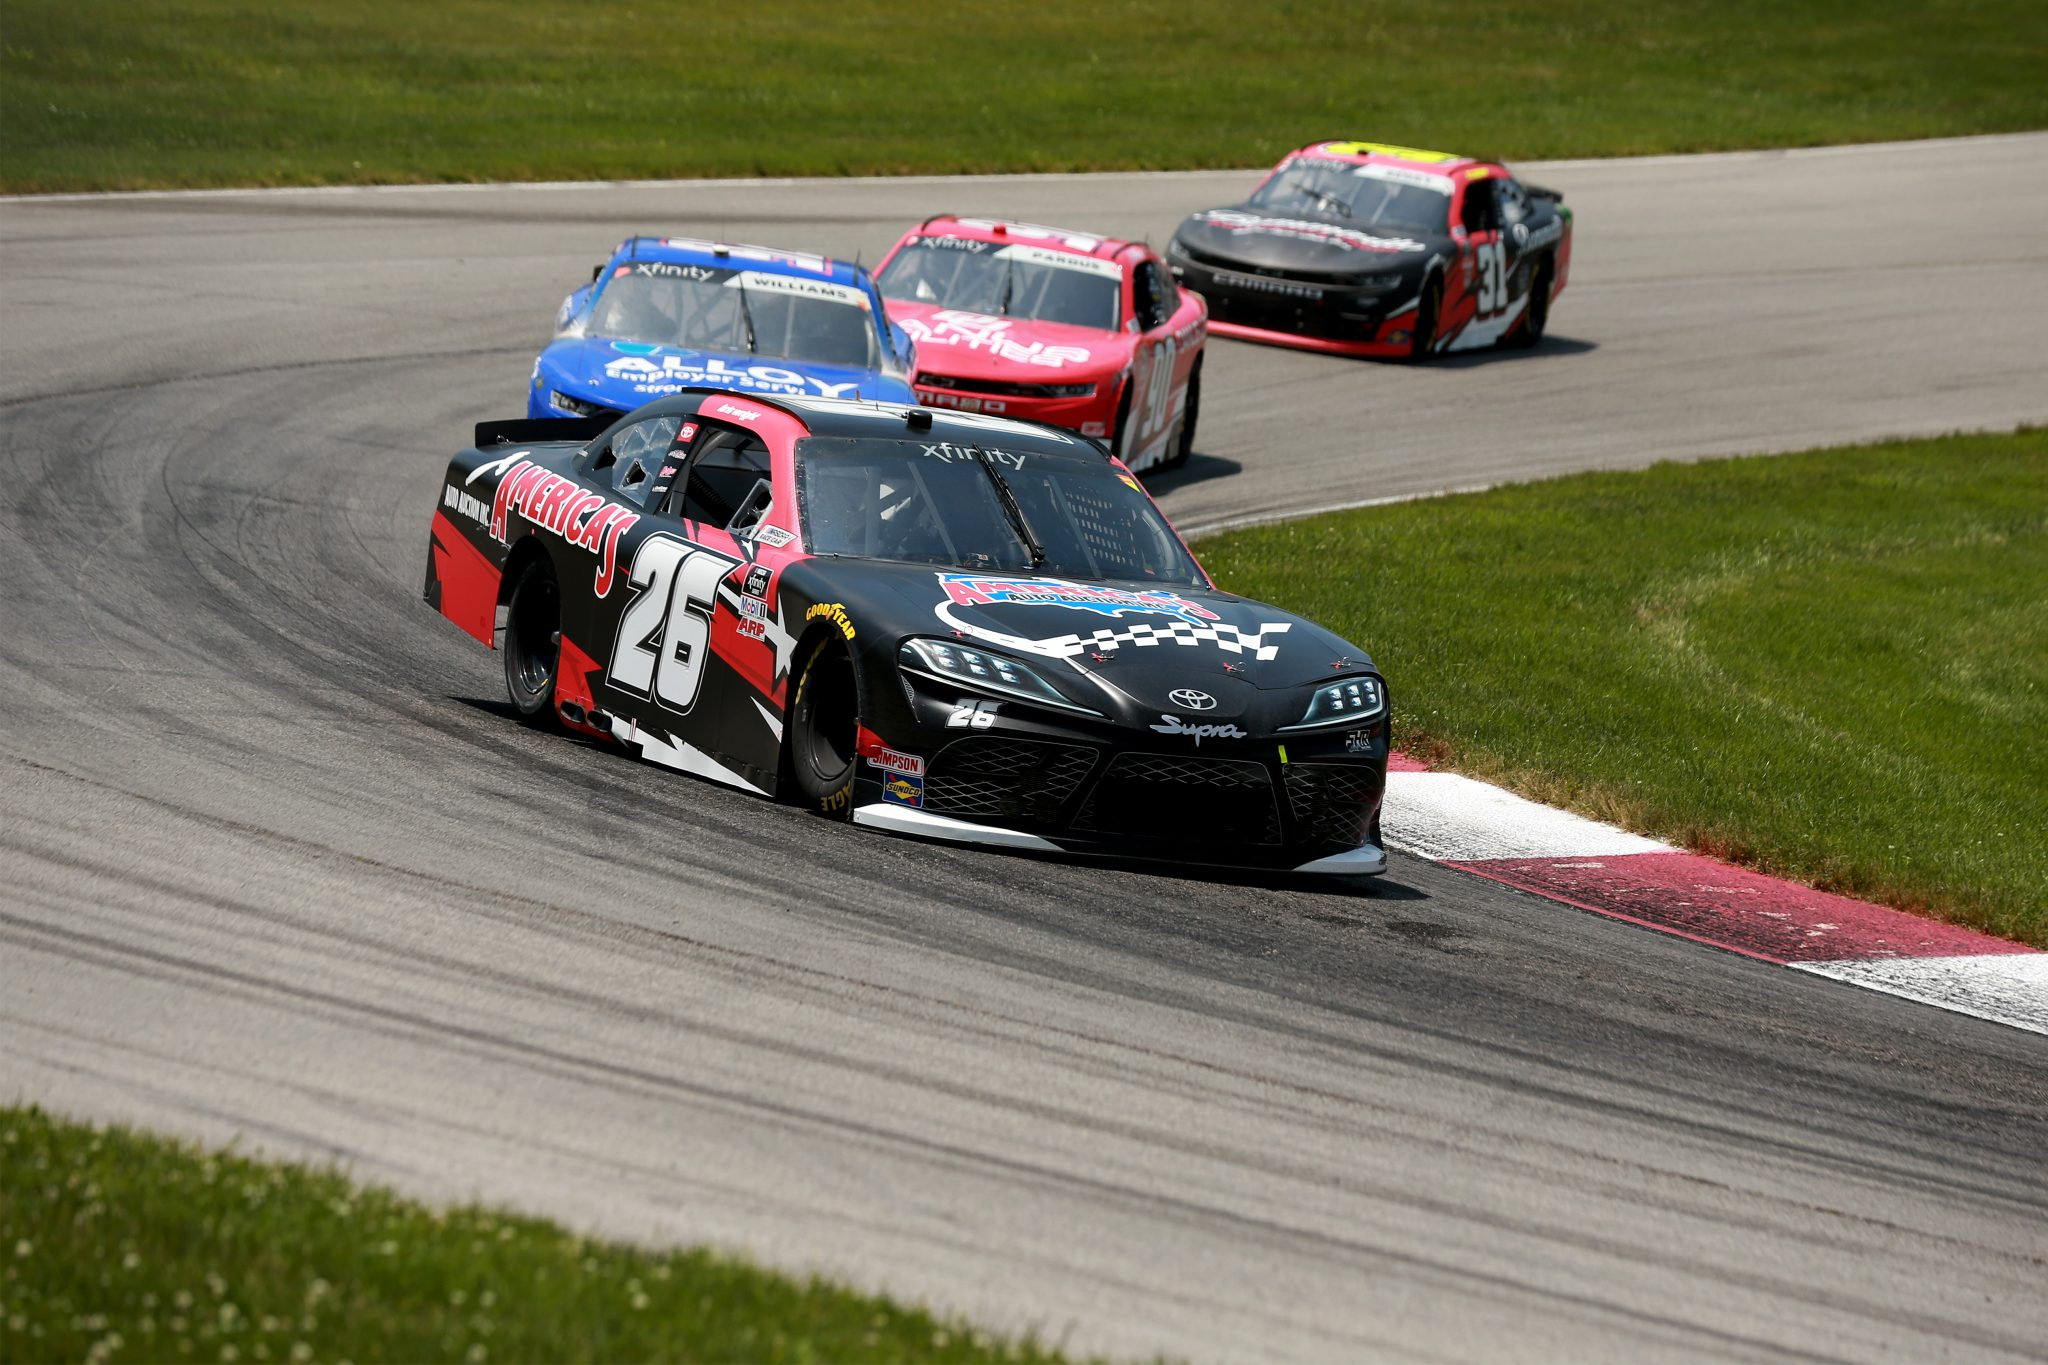 LEXINGTON, OHIO - JUNE 05: Kris Wright, driver of the #26 America's Auto Auction Toyota, drives during the NASCAR Xfinity Series B&L Transport 170 at Mid-Ohio Sports Car Course on June 05, 2021 in Lexington, Ohio. (Photo by Sean Gardner/Getty Images) | Getty Images